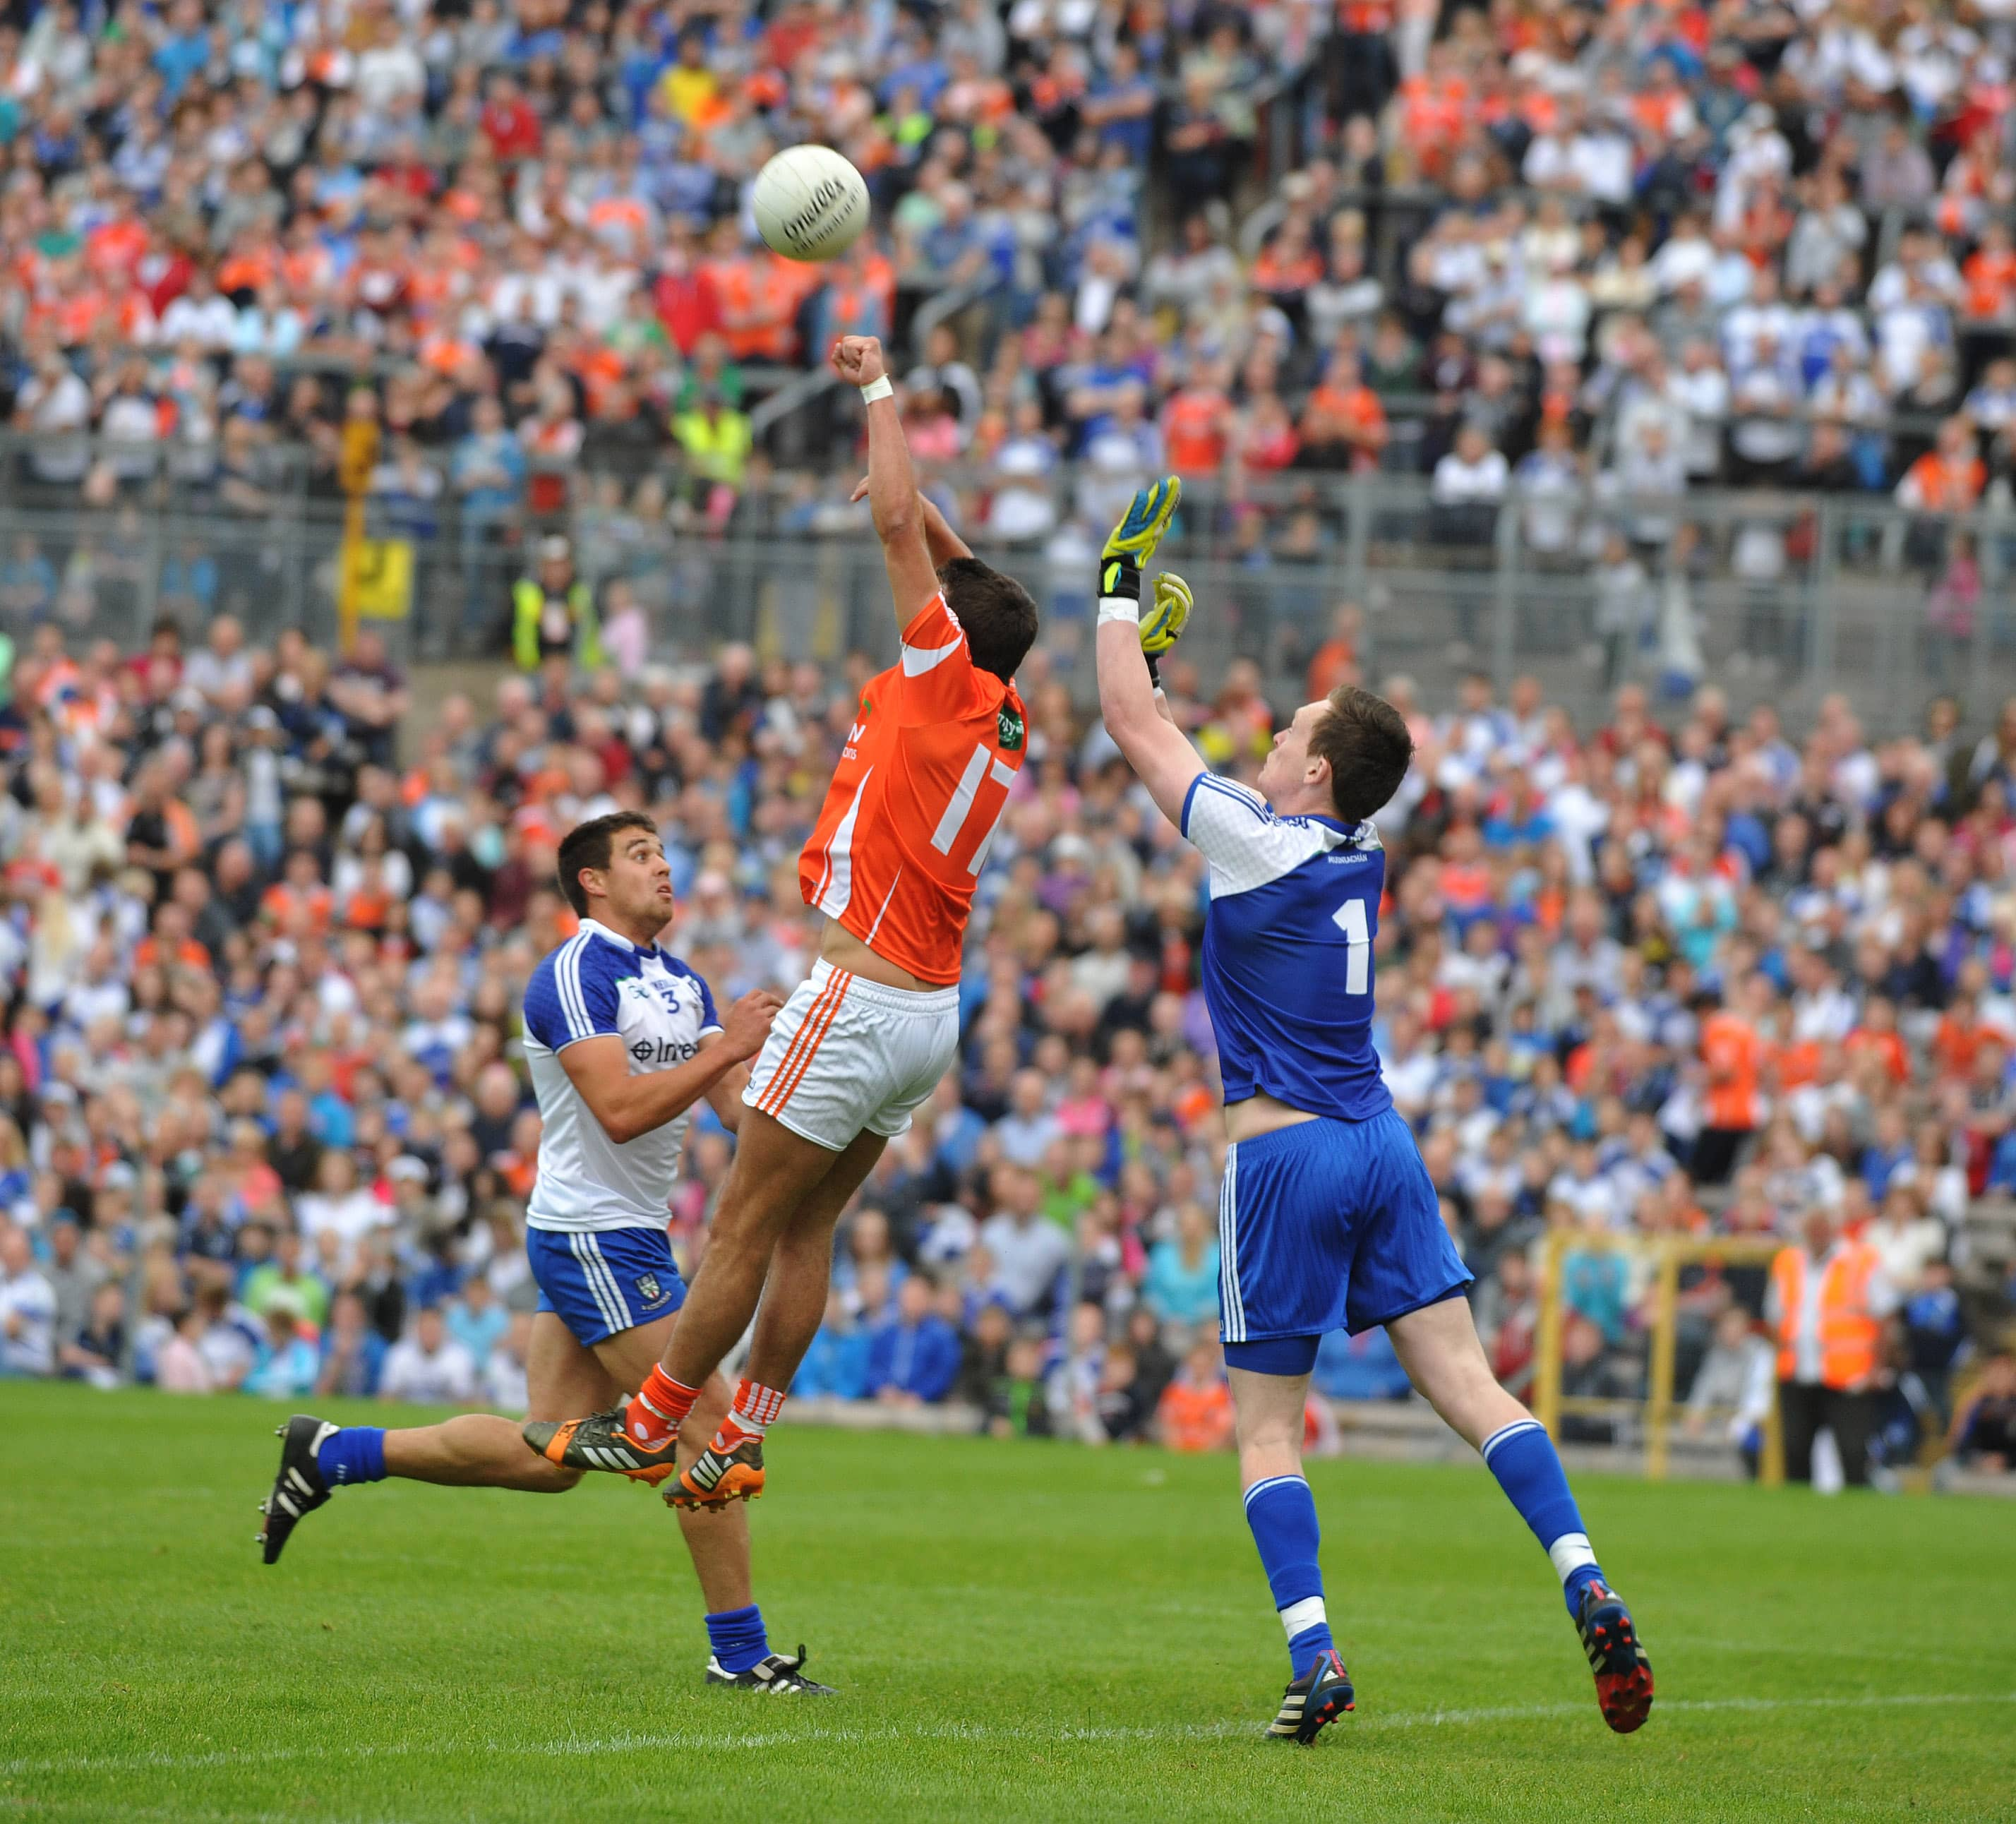 Armagh's Stefan Campbell came close with this flicked first half effort over the head of Monaghan 'keeper, Rory Beggan during their Ulster Senior Championship semi-final nailbiter at Clones on Saturday evening. ©ConorGreenanPhotography